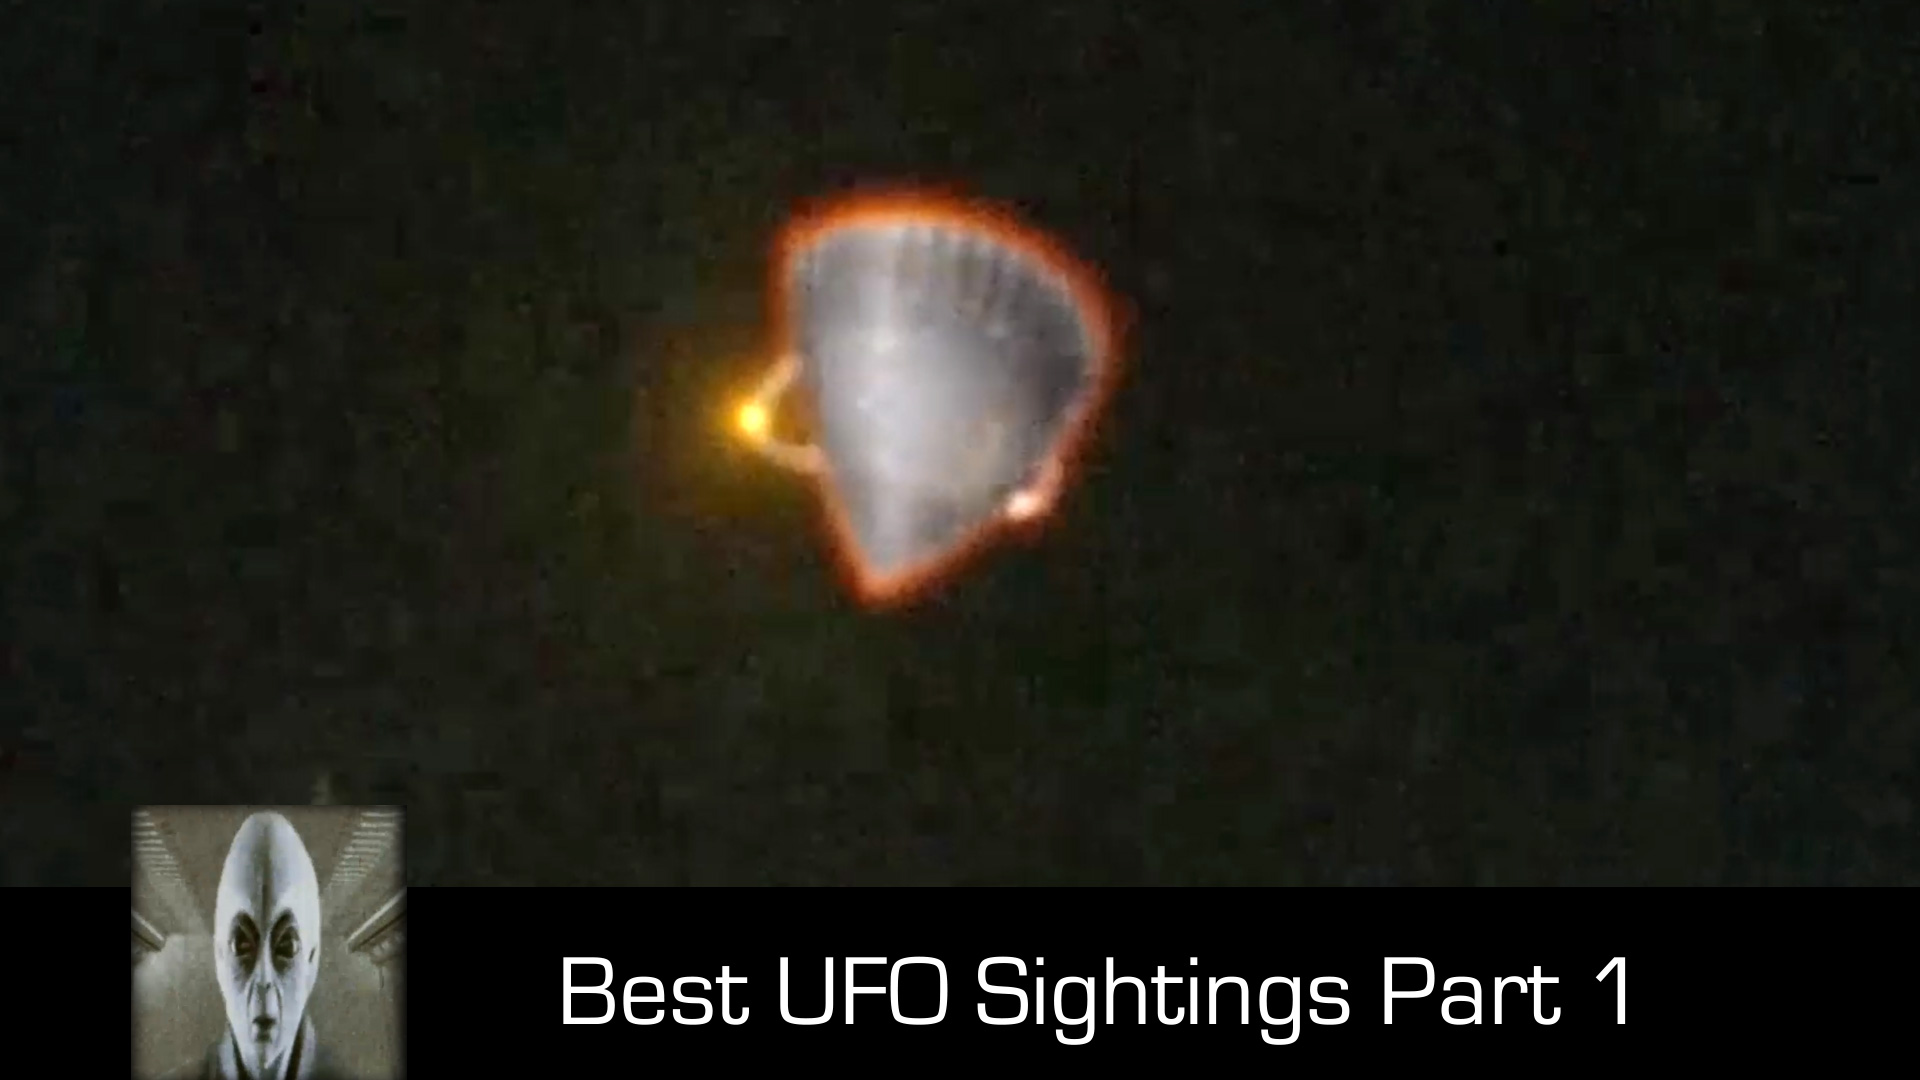 Best UFO Sightings 2017 Part 1